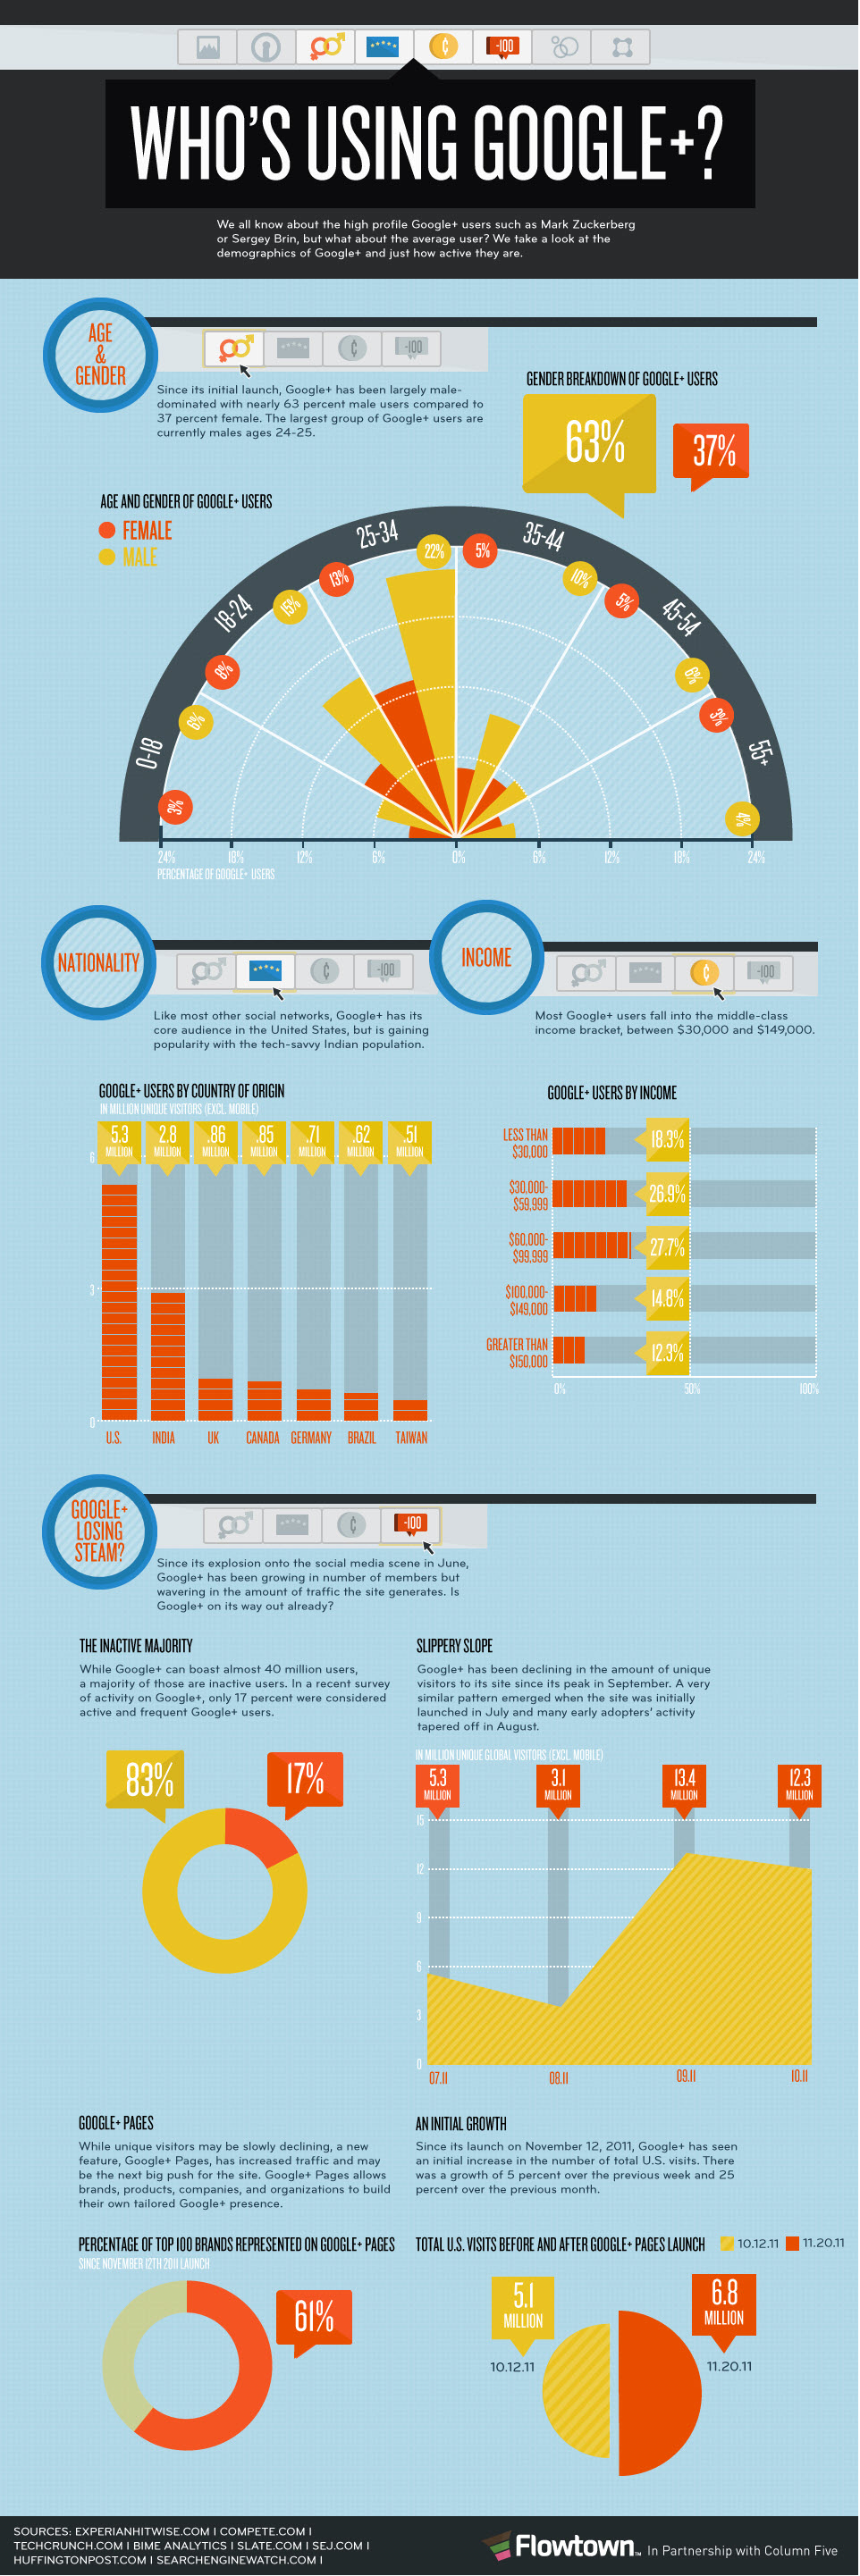 Google+ Infographic, Google+ marketing, Google+ lead generation